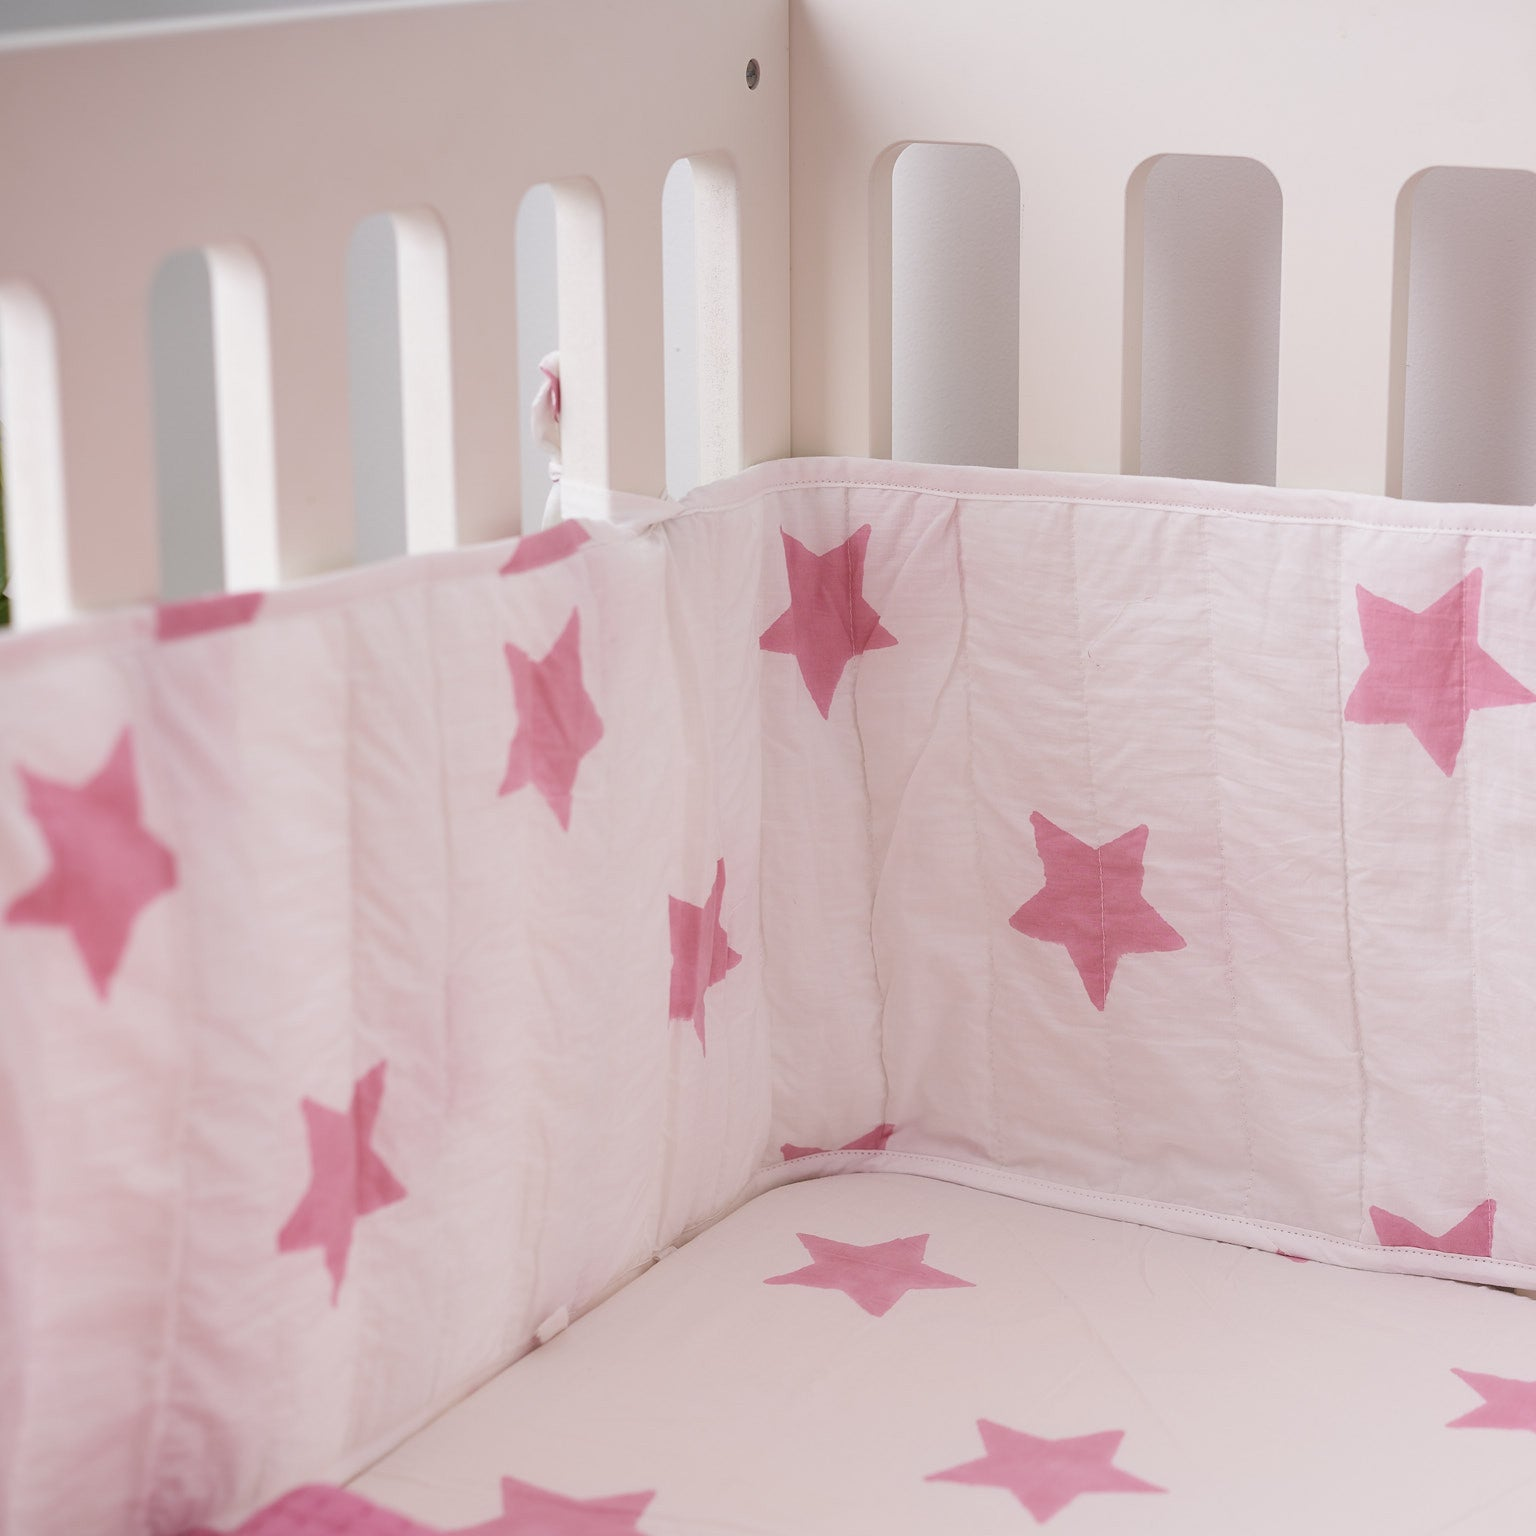 Pastel pink cot bed fitted sheet